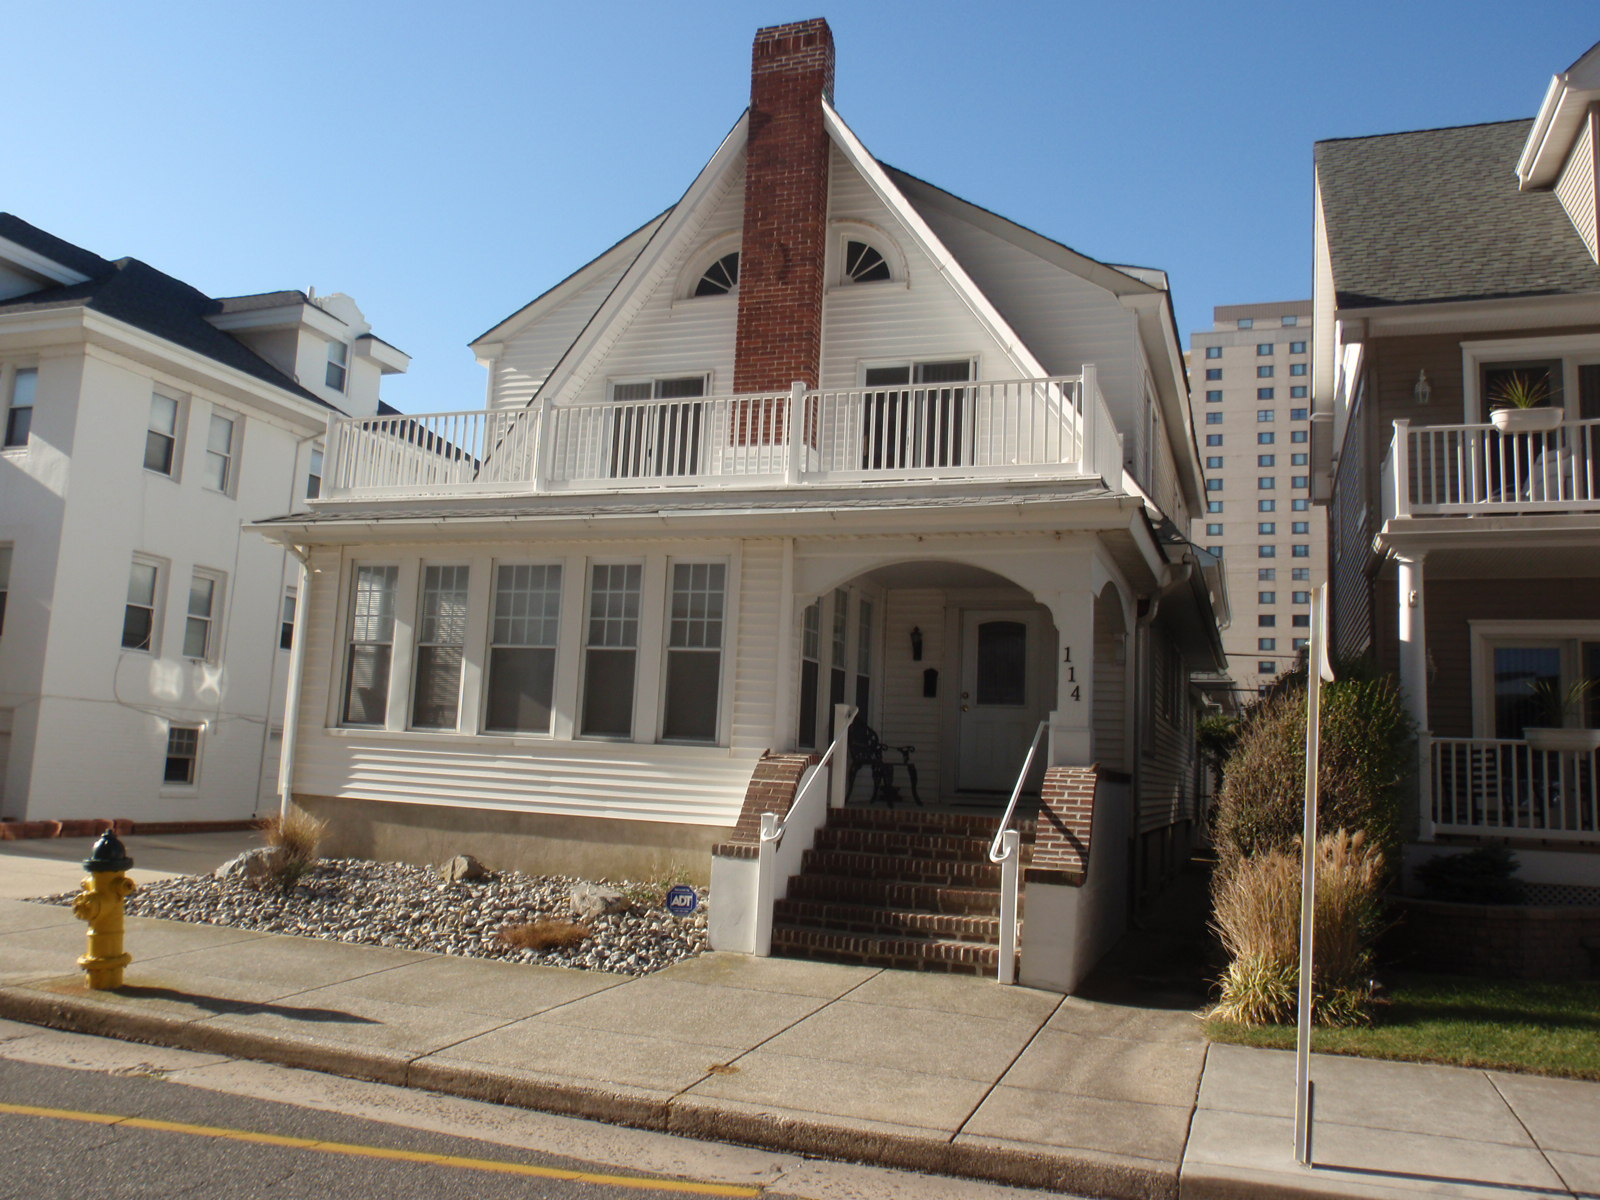 Single Family Home for Sale at 114 S Vassar Square Ventnor, New Jersey 08406 United States